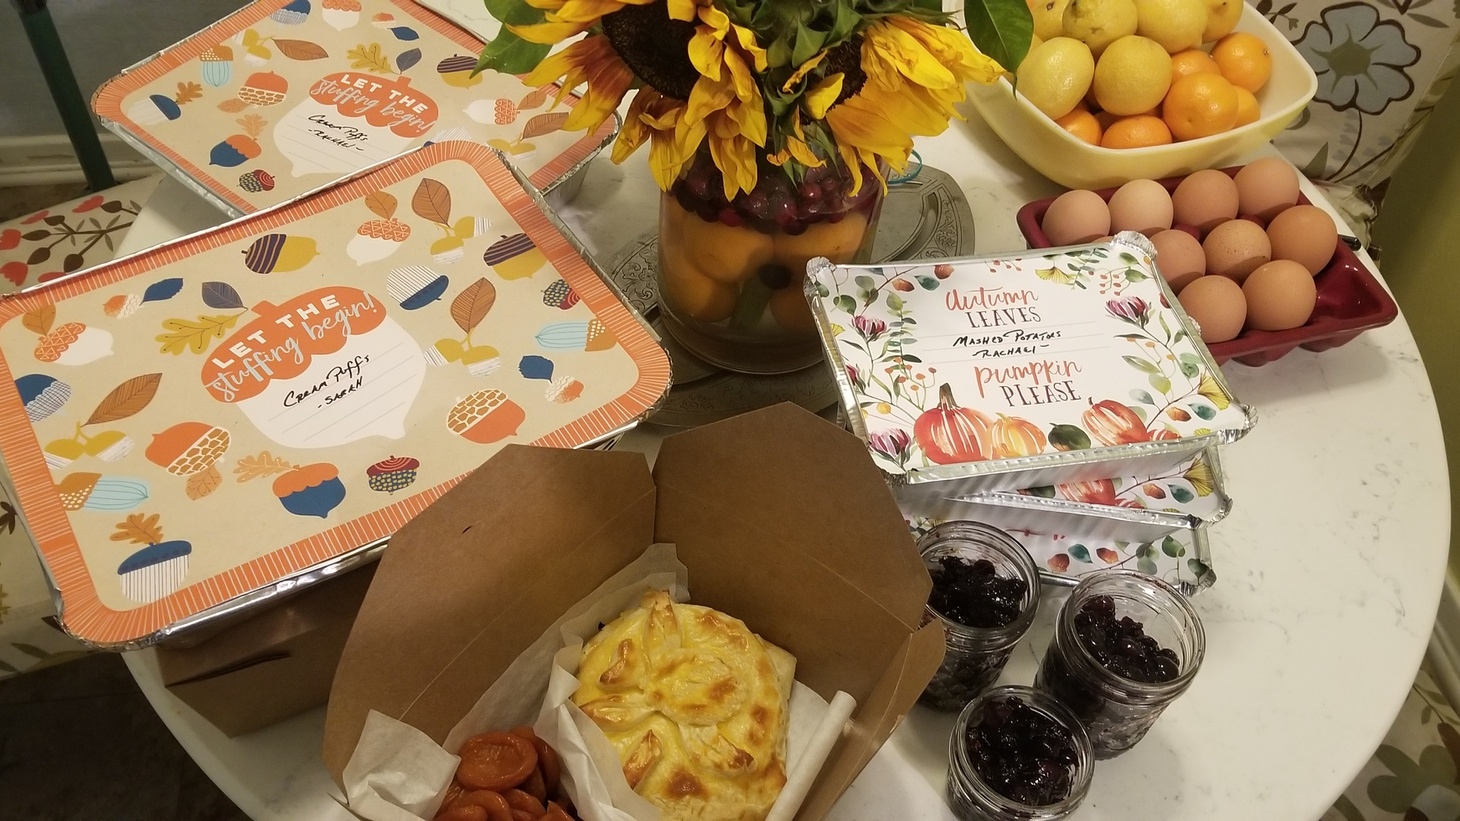 Hannah Benage says she and her three sisters are making family recipes this Thanksgiving, and they'll drop them off at each other's doors to trade.